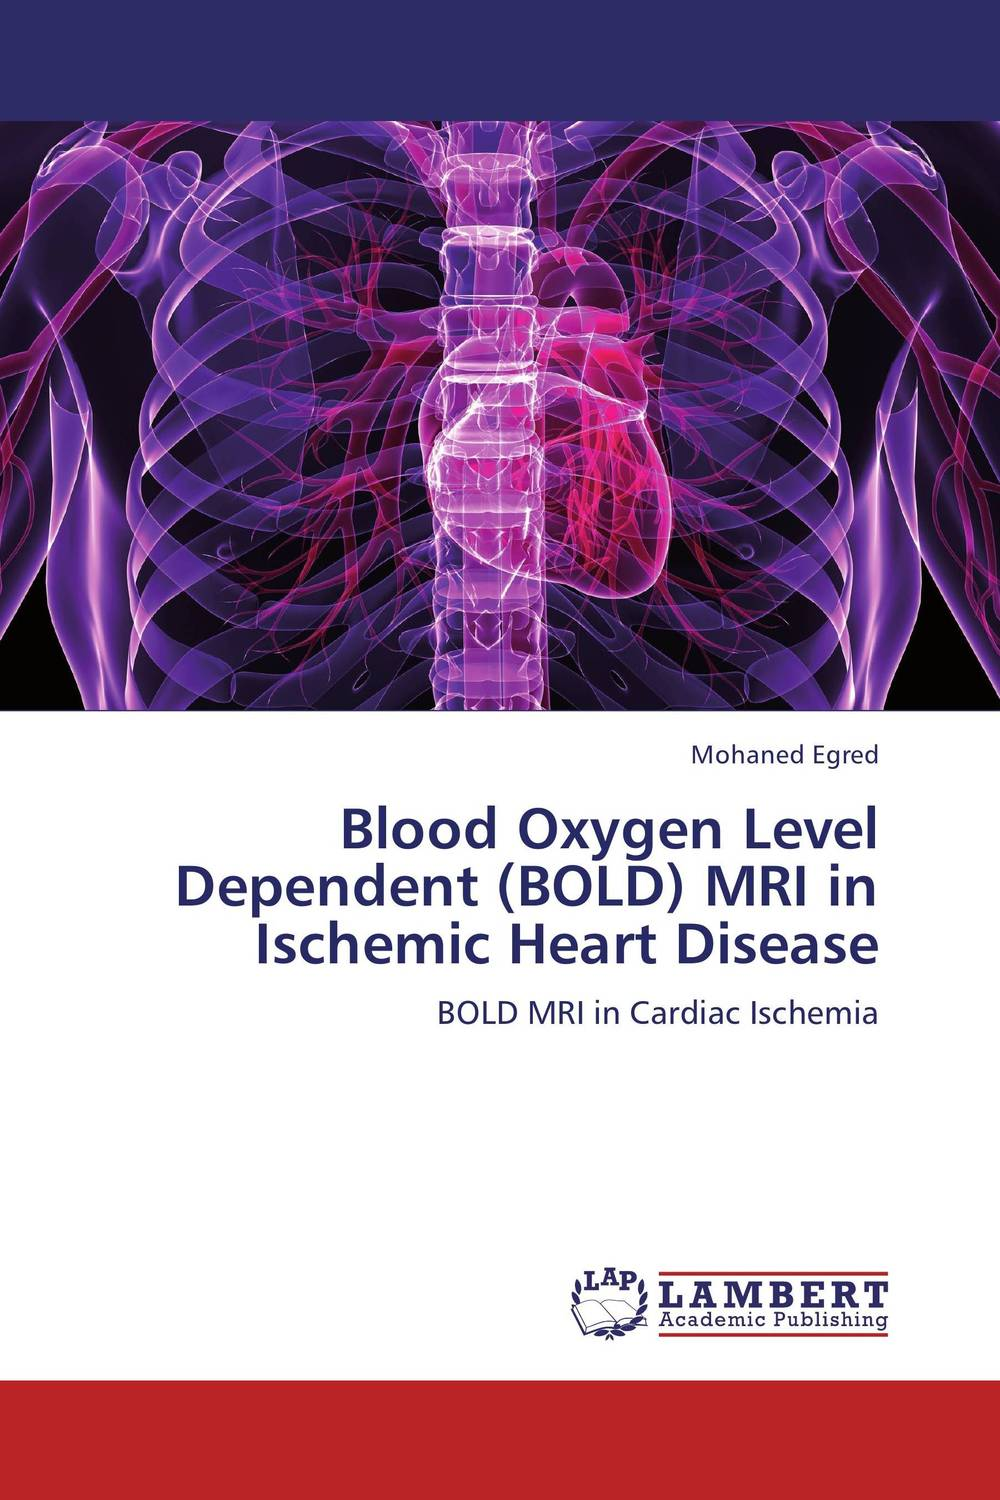 Blood Oxygen Level Dependent (BOLD) MRI in Ischemic Heart Disease effect of ischemic heart disease on the audiovestibular functions